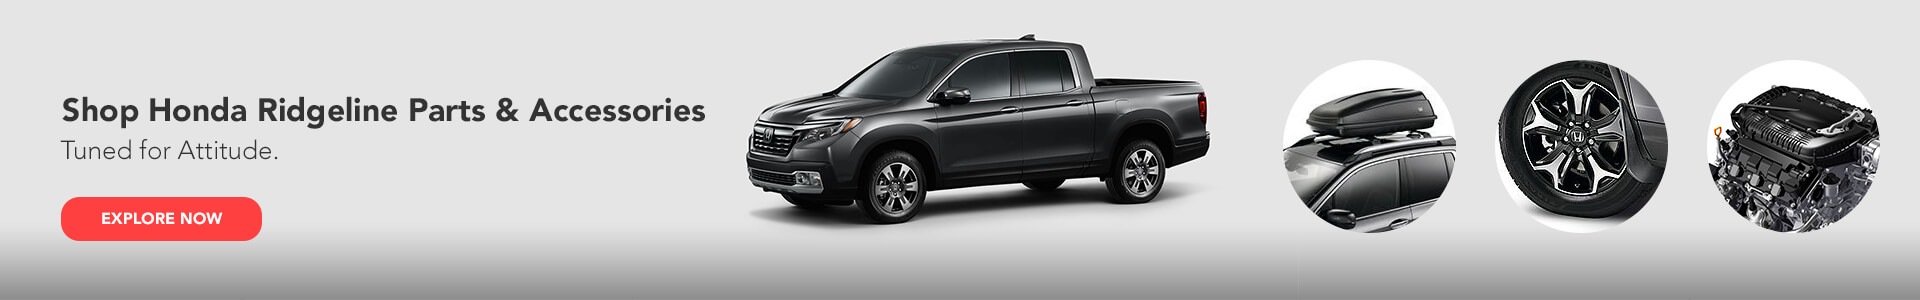 Honda Ridgeline Parts & Accessories